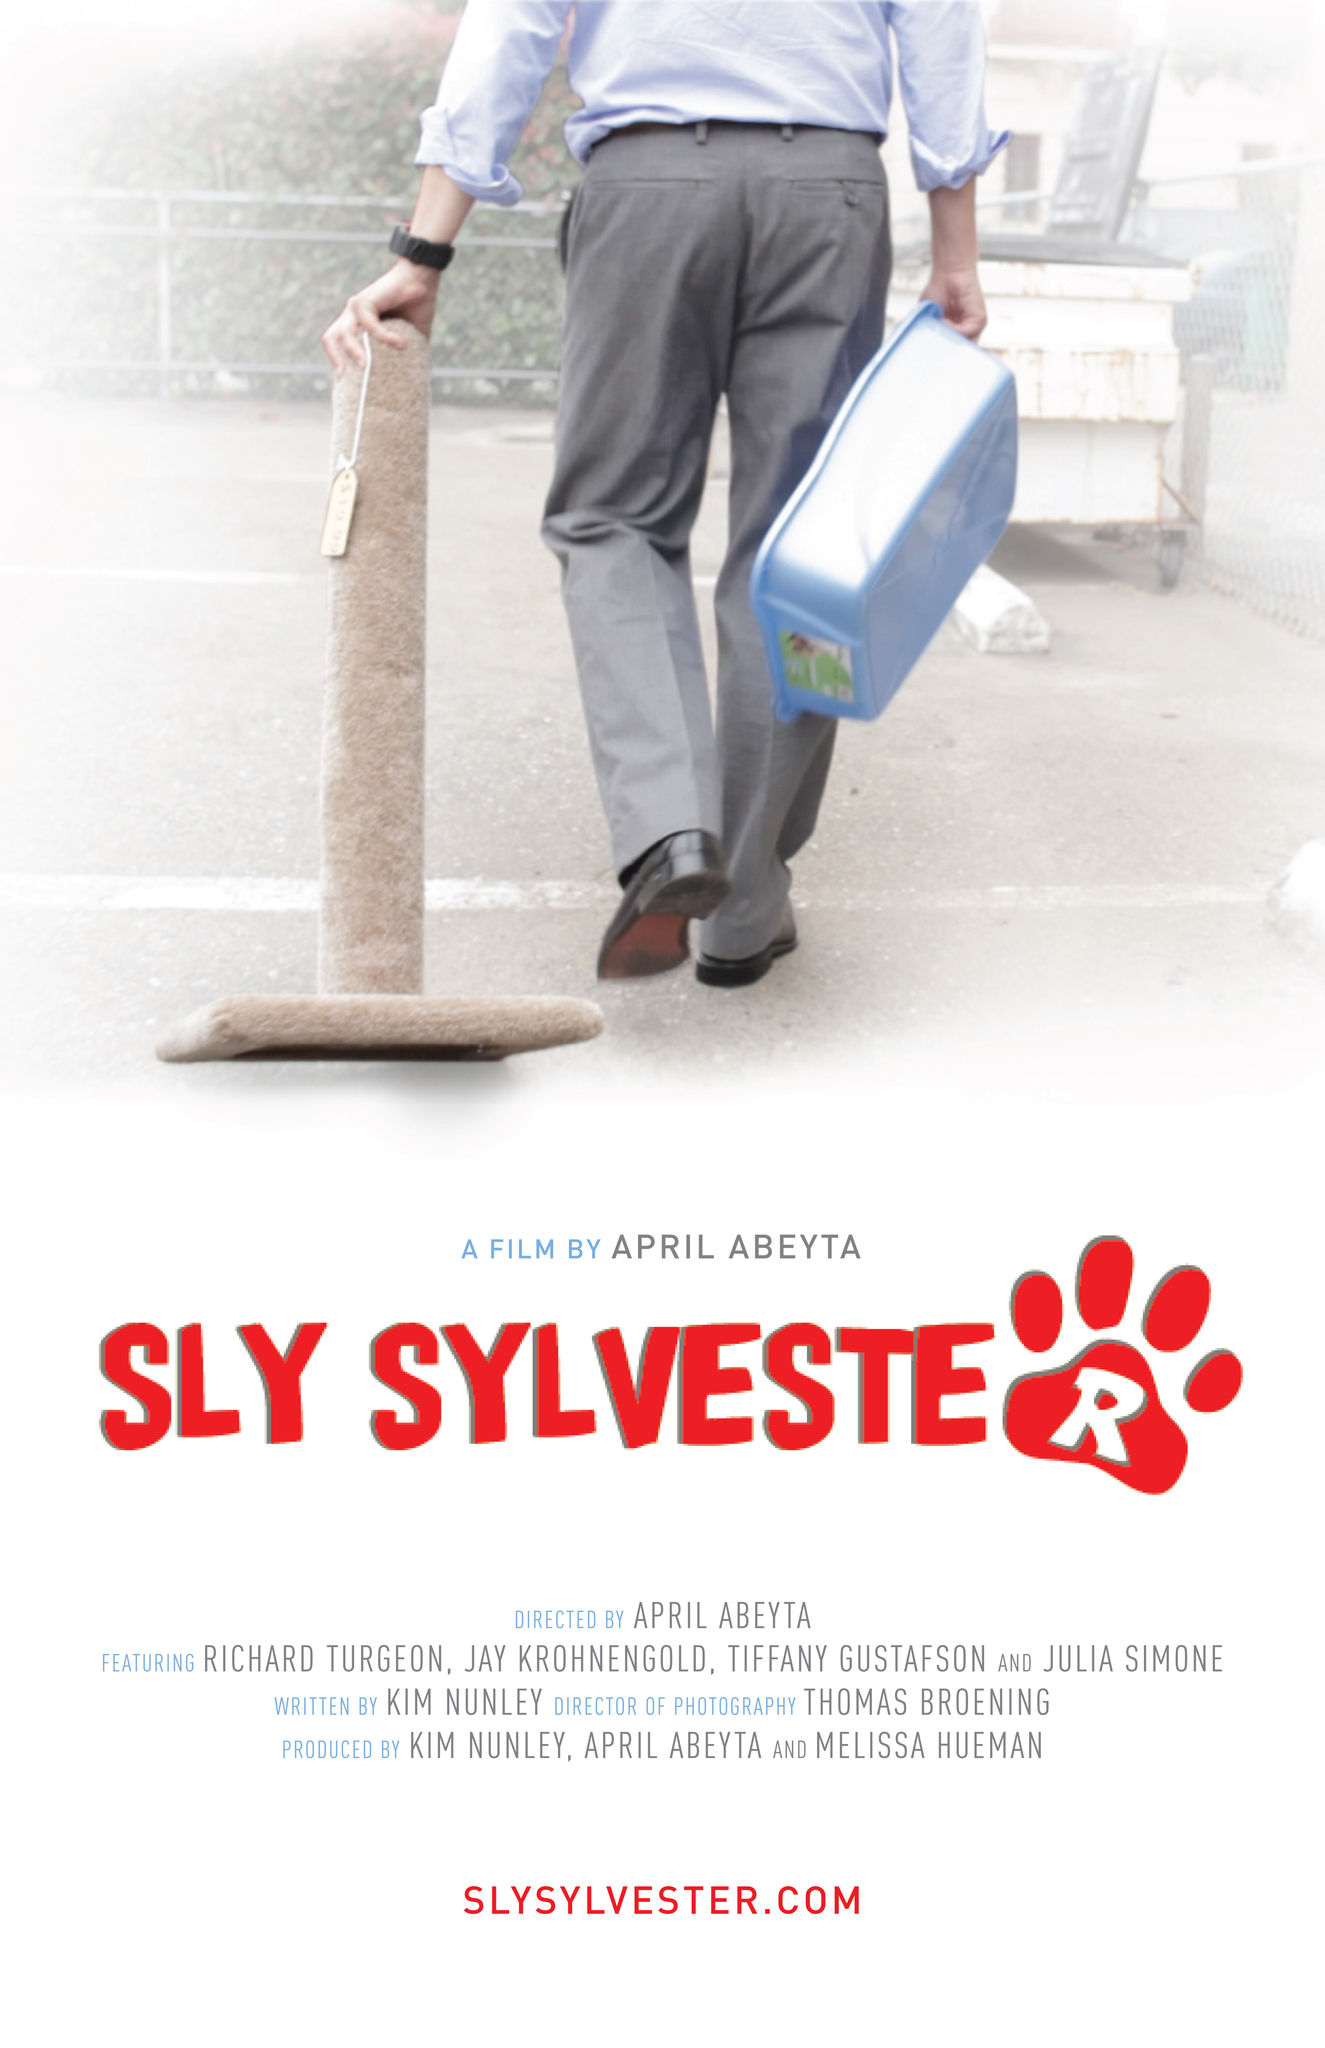 Sly Sylvester